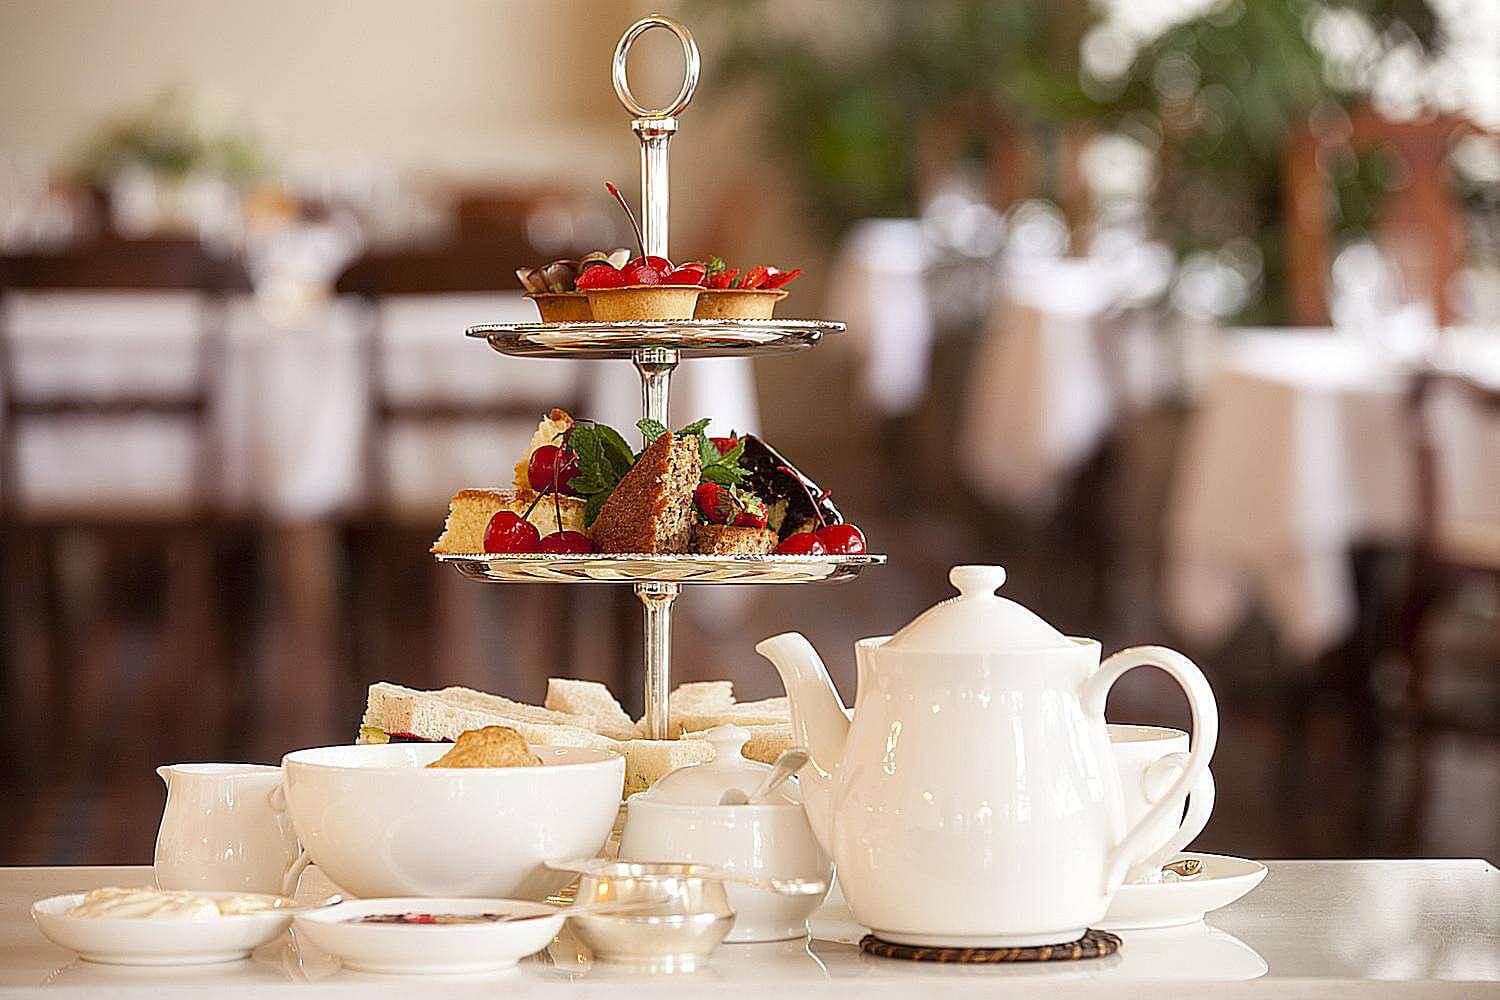 The Lumber Baron Opens for Weekend Brunchand Old-Fashioned Afternoon Tea